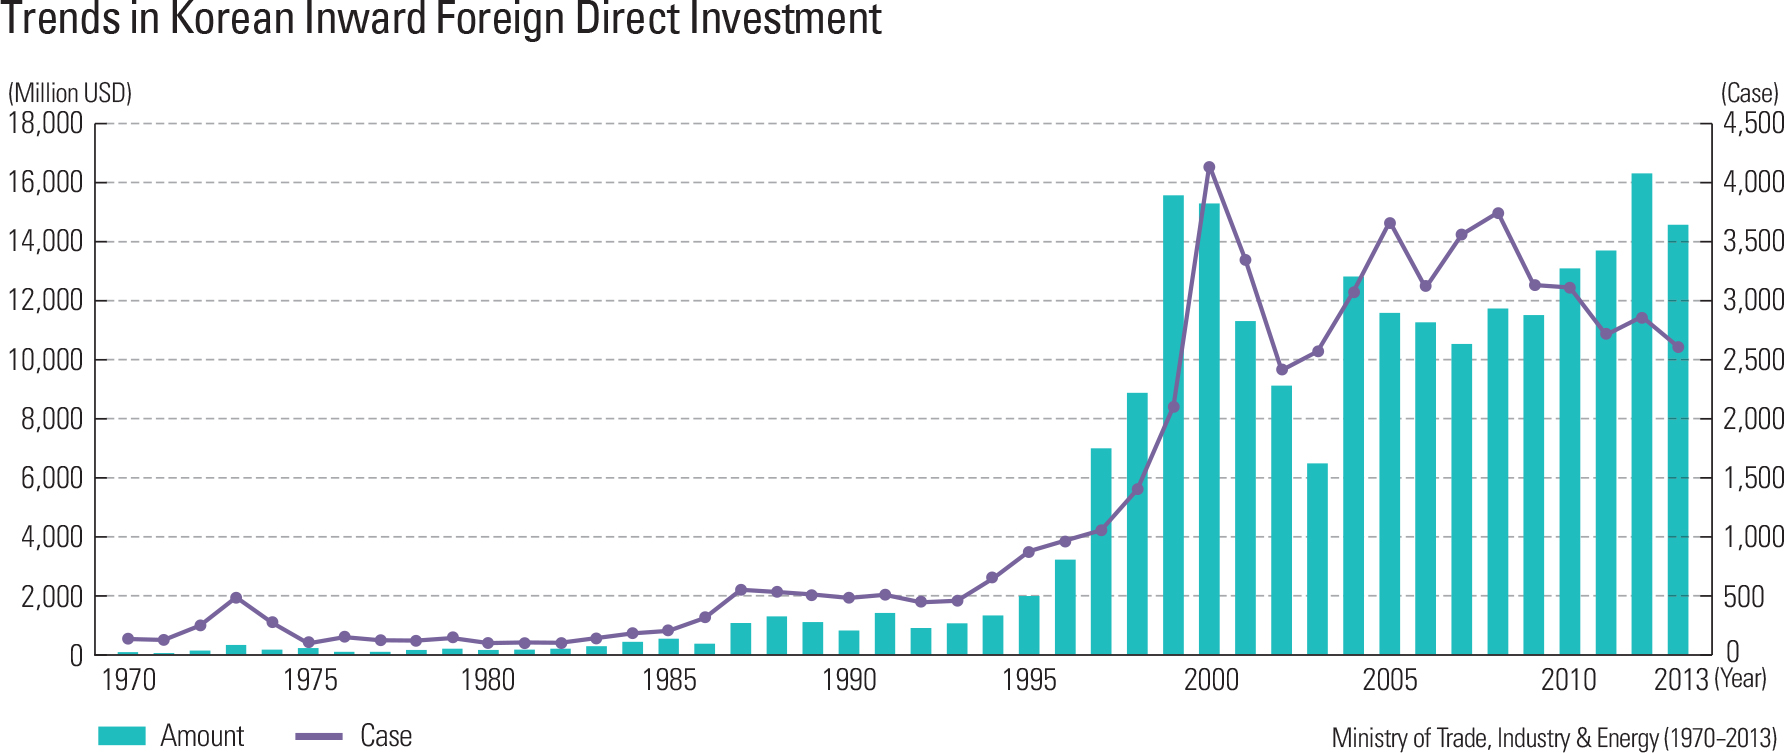 Trends in Korean Inward Foreign Direct Investment